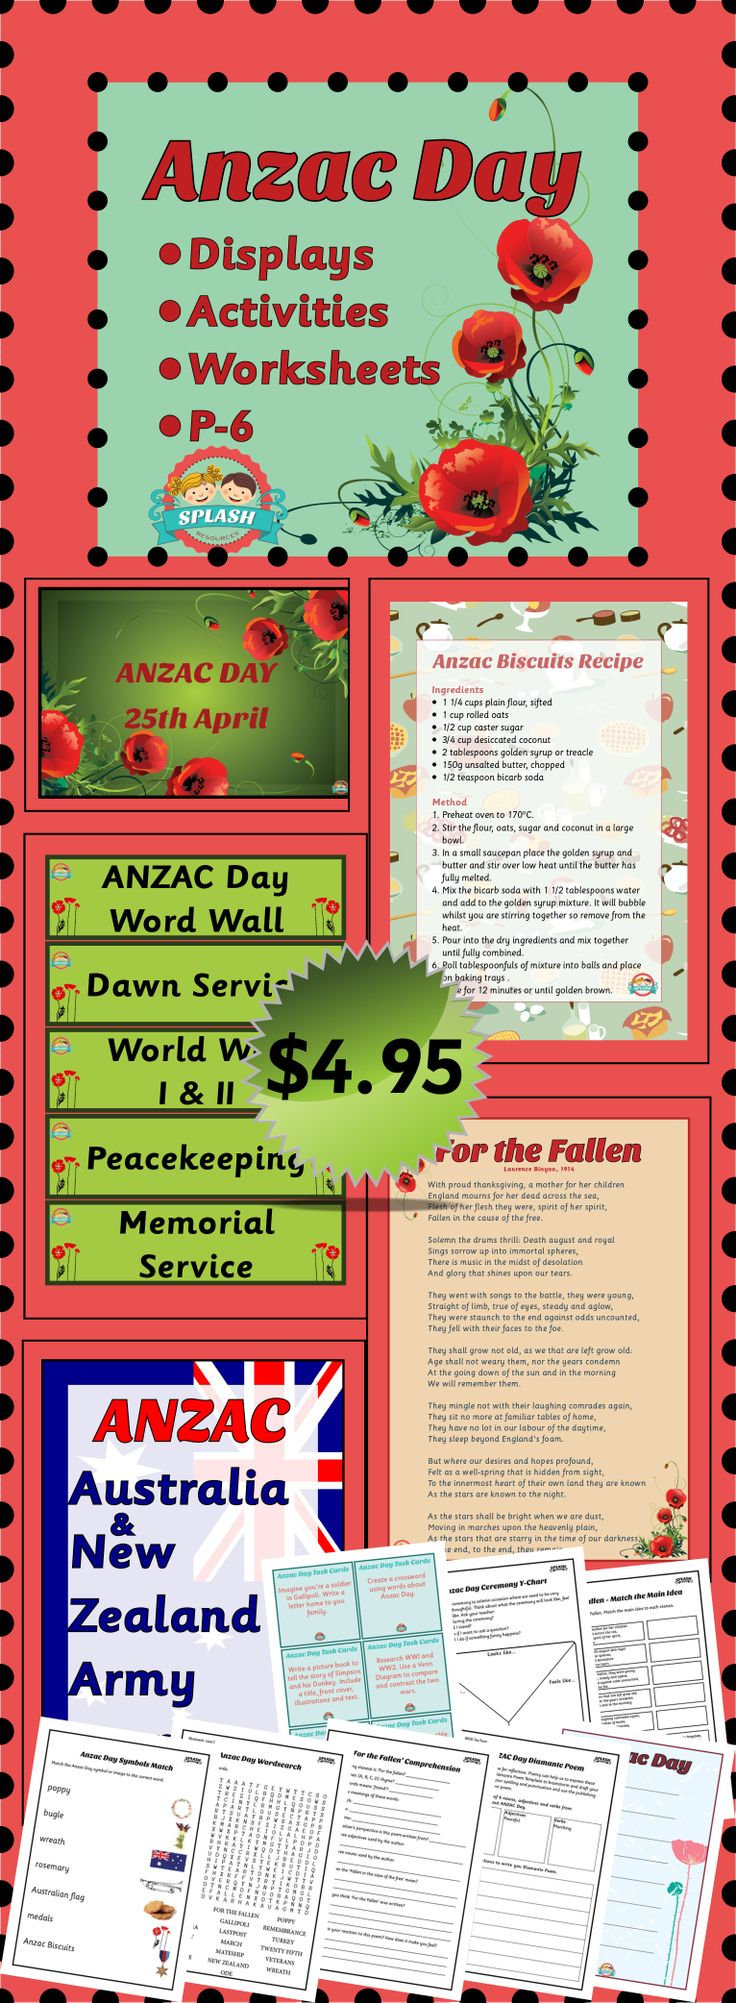 Anzac Day (25 April) posters, task cards, activities and worksheets for Year 1, 2, 3, 4, 5 and 6. $4.95 #splashresources #themebook #australia #holidays #remembranceday #history #socialstudies